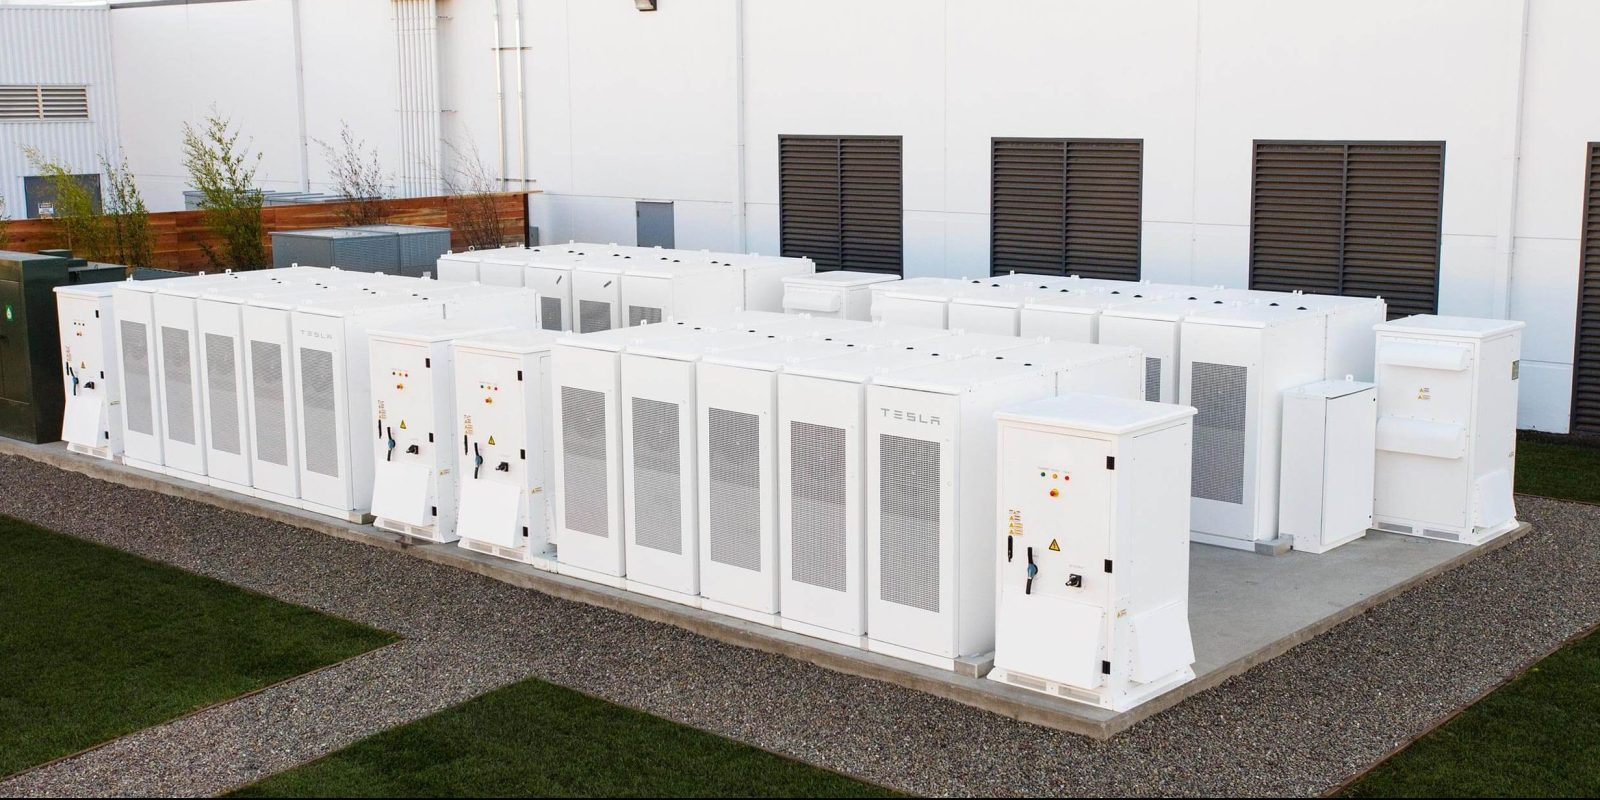 Tesla is doubling the energy capacity of the Powerpack with new battery cells from the Gigafactory